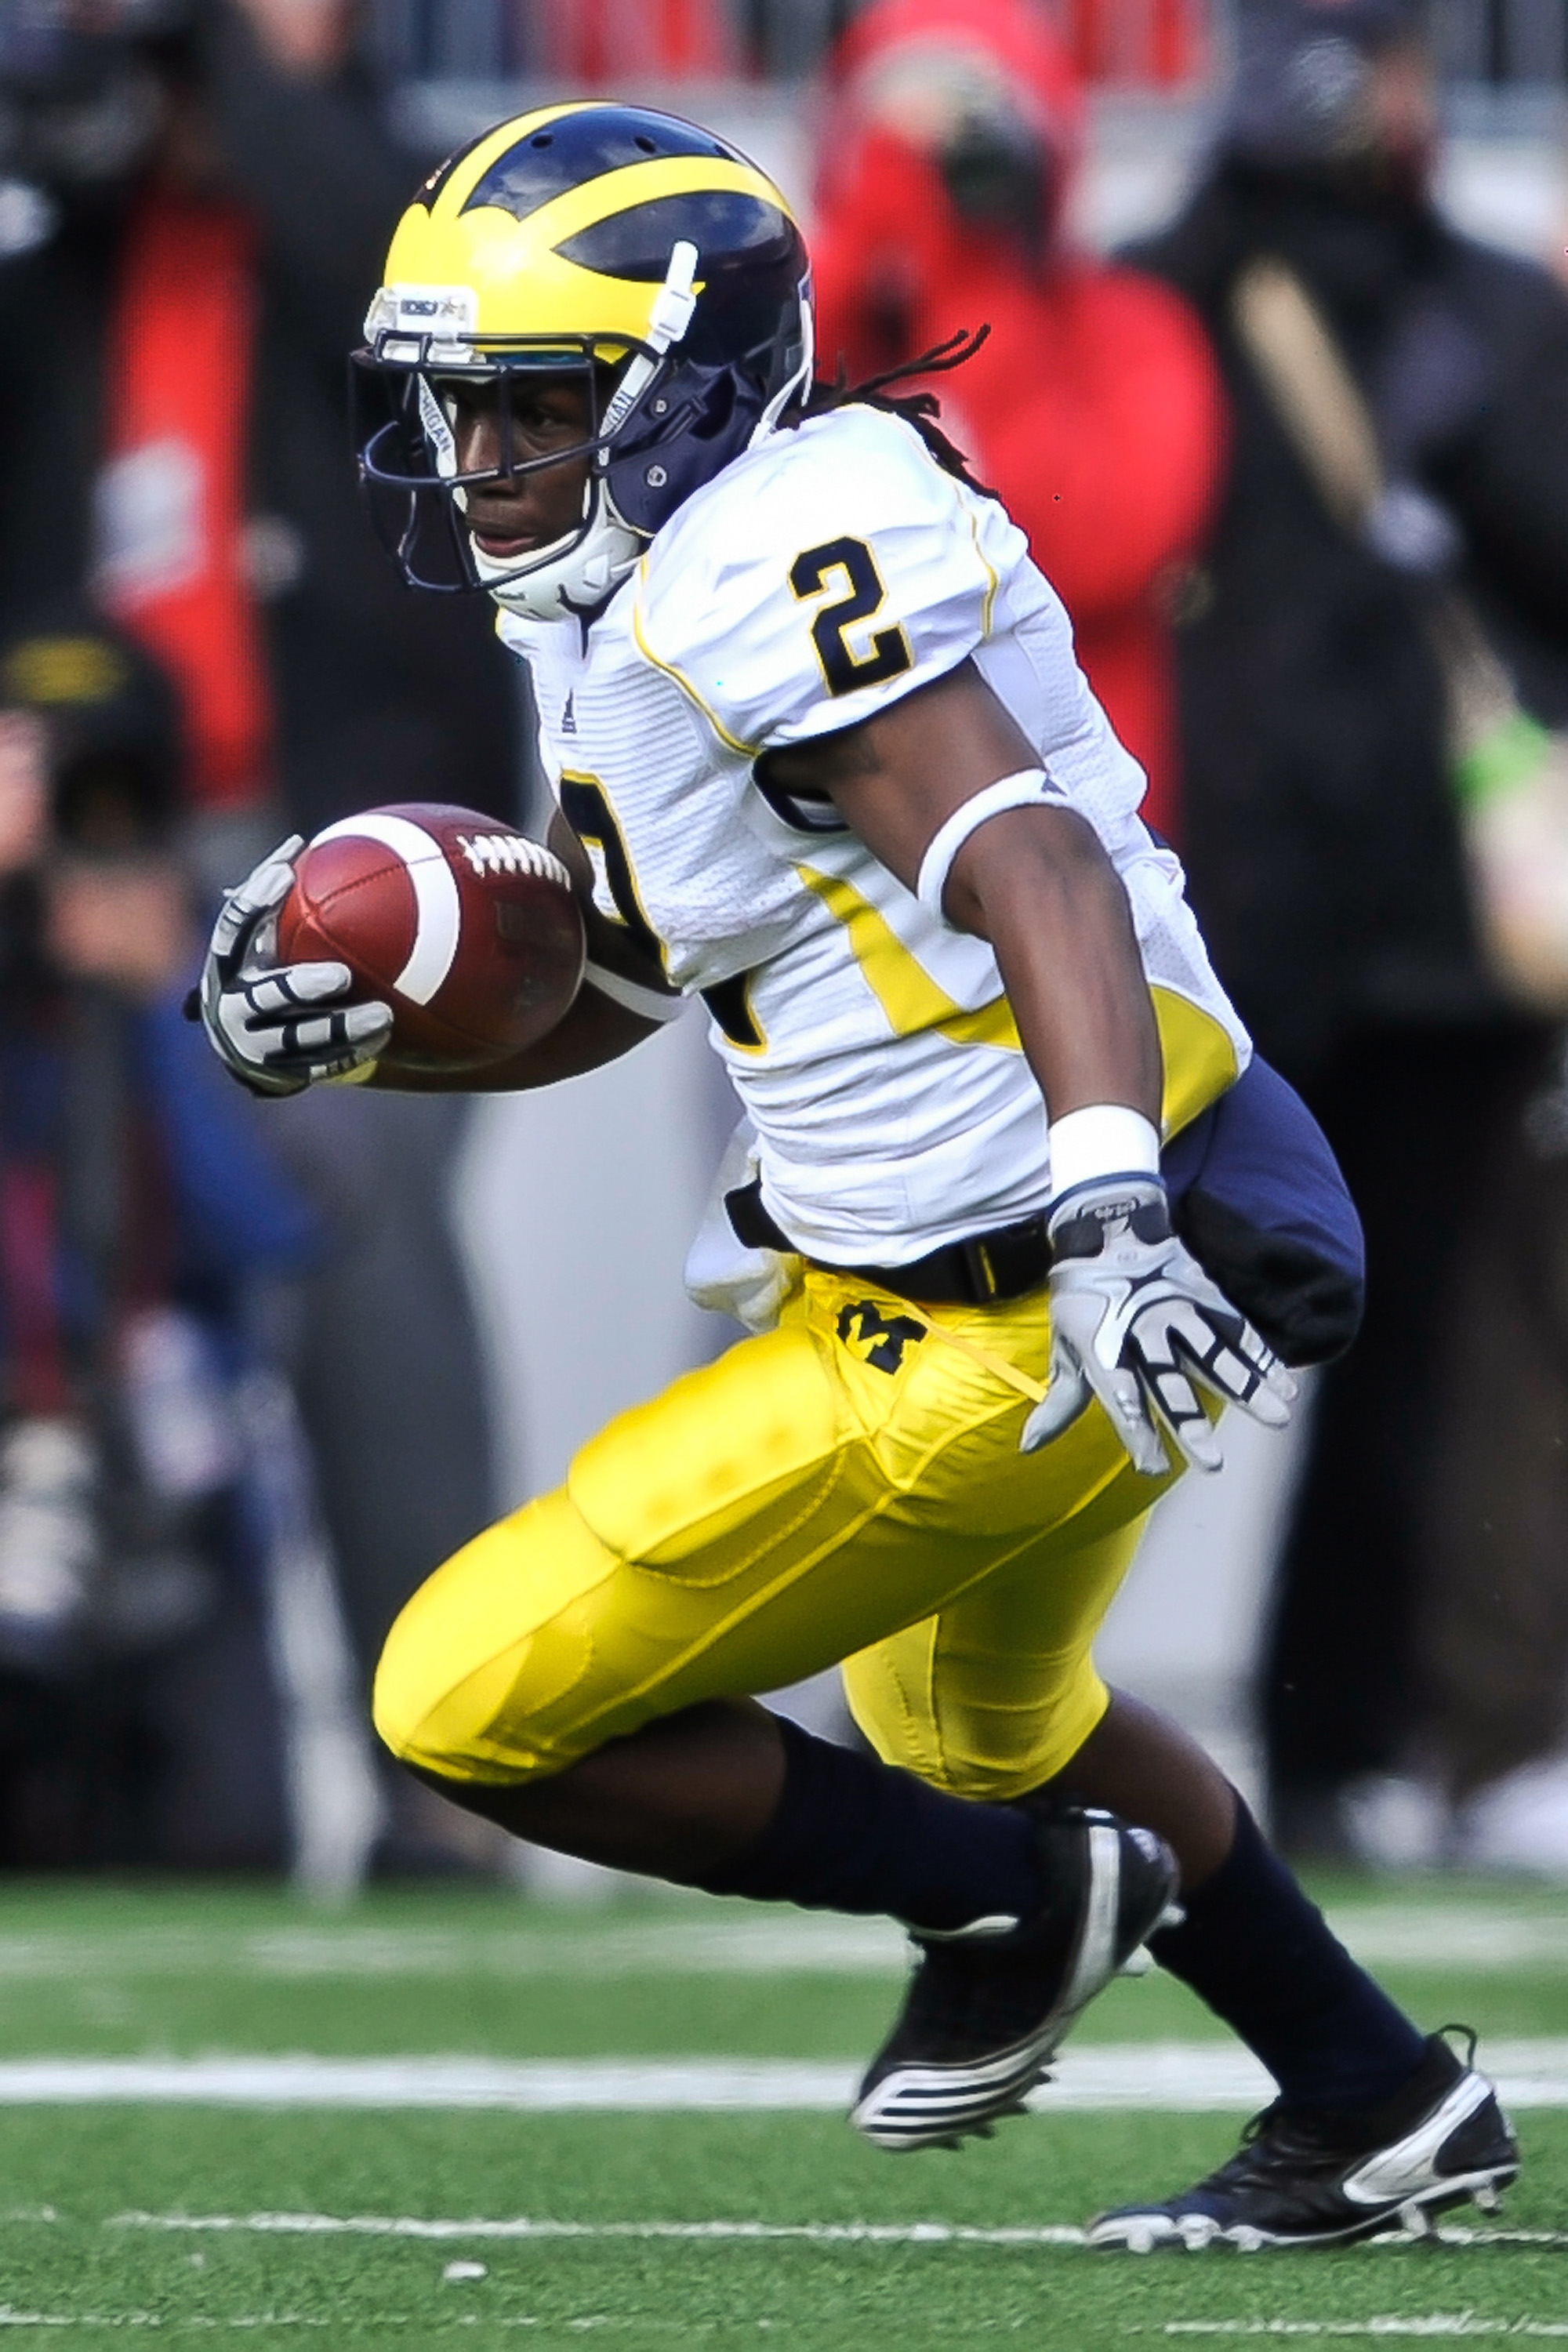 COLUMBUS, OH - NOVEMBER 27:  Vincent Smith #2 of the Michigan Wolverines runs with the ball against the Ohio State Buckeys at Ohio Stadium on November 27, 2010 in Columbus, Ohio.  (Photo by Jamie Sabau/Getty Images)